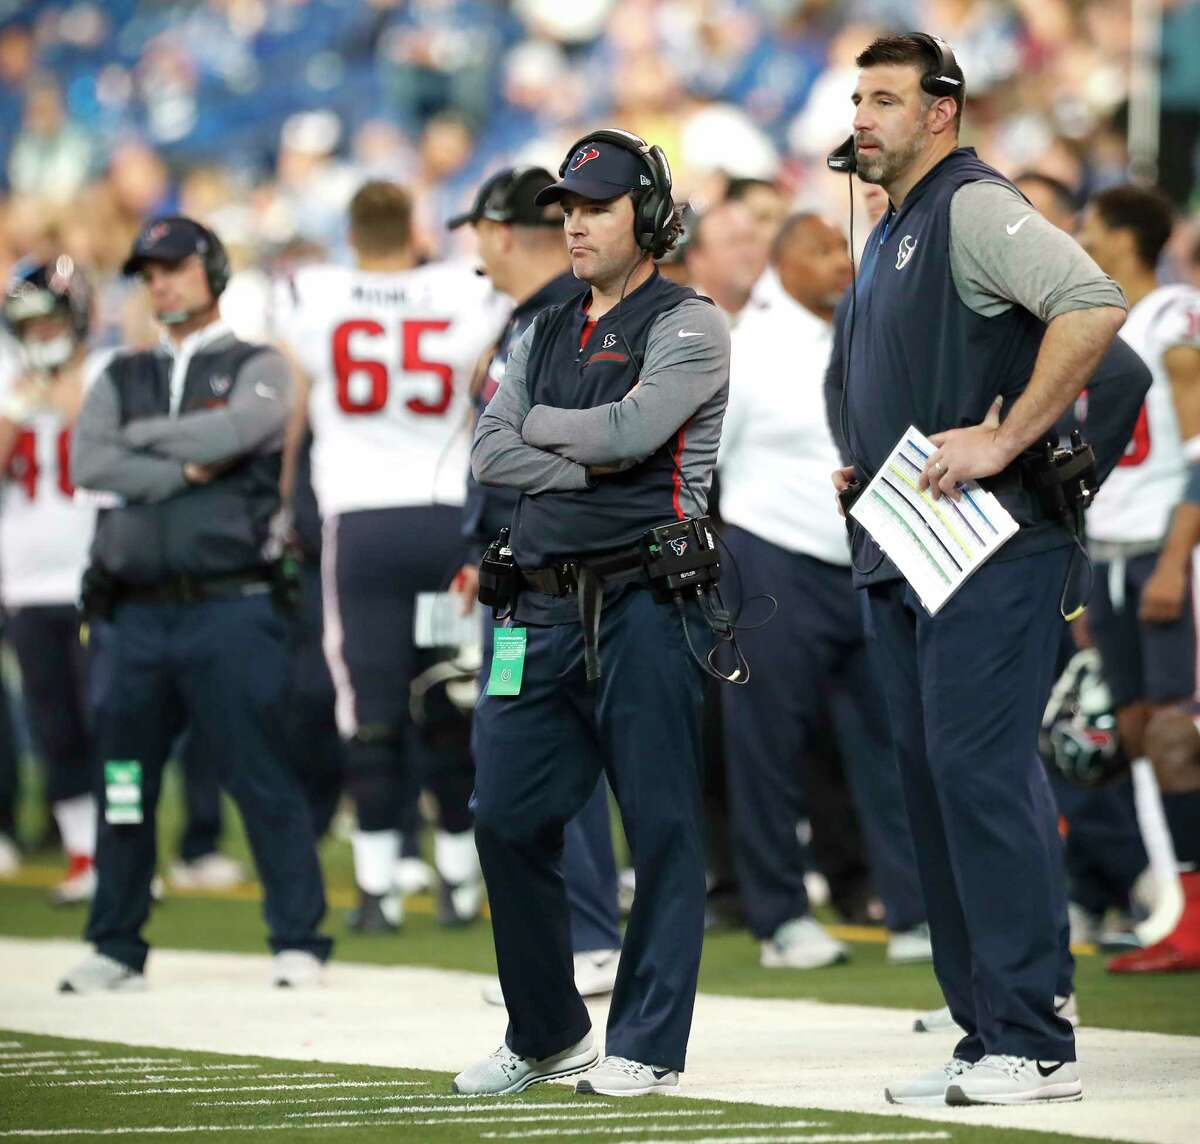 Houston Texans secdondary coach John Butler, left, and defensive coordinator Mike Vrabel stand on the sidelines during the fourth quarter of an NFL football game against the Indianapolis Colts at Lucas Oil Stadium on Sunday, Dec. 31, 2017, in Indianapolis.